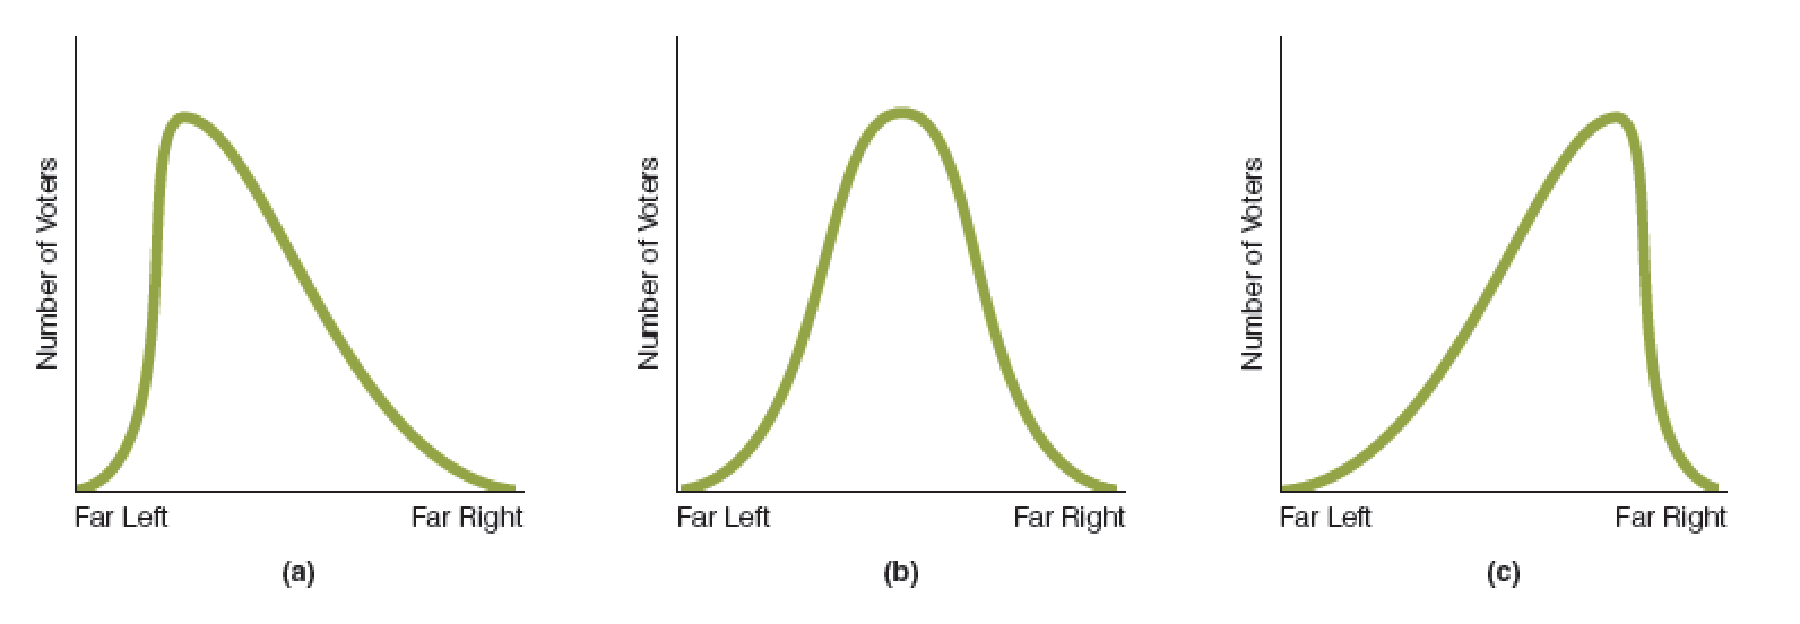 Chapter 31, Problem 3WNG, In part (a) of the accompanying figure, the distribution of voters is skewed to the left; in part